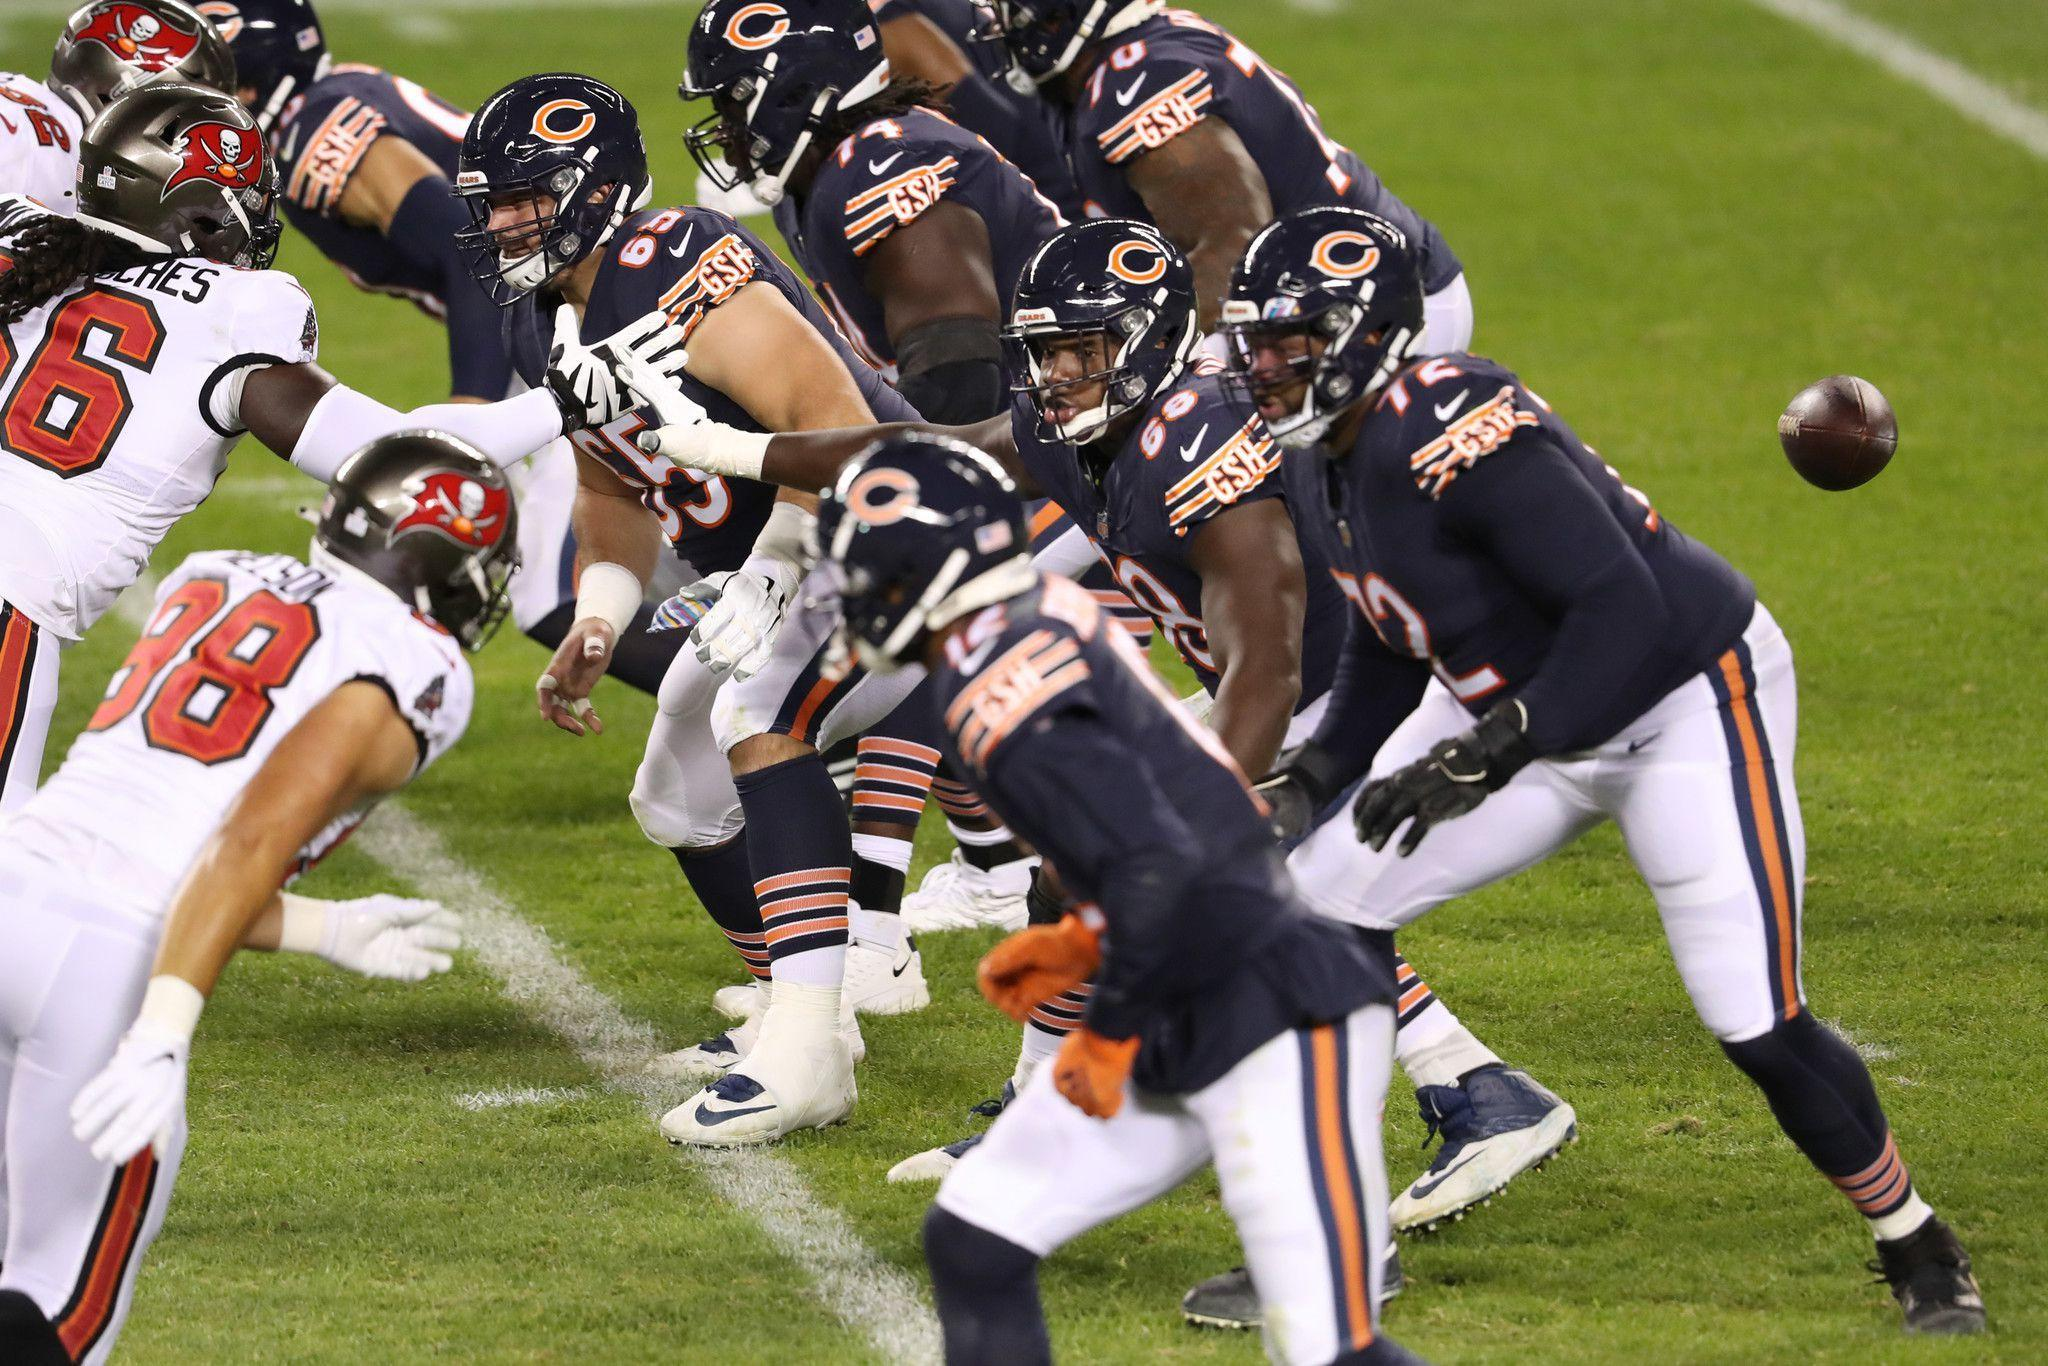 Chicago Bears practice squad player reportedly tests positive for COVID-19